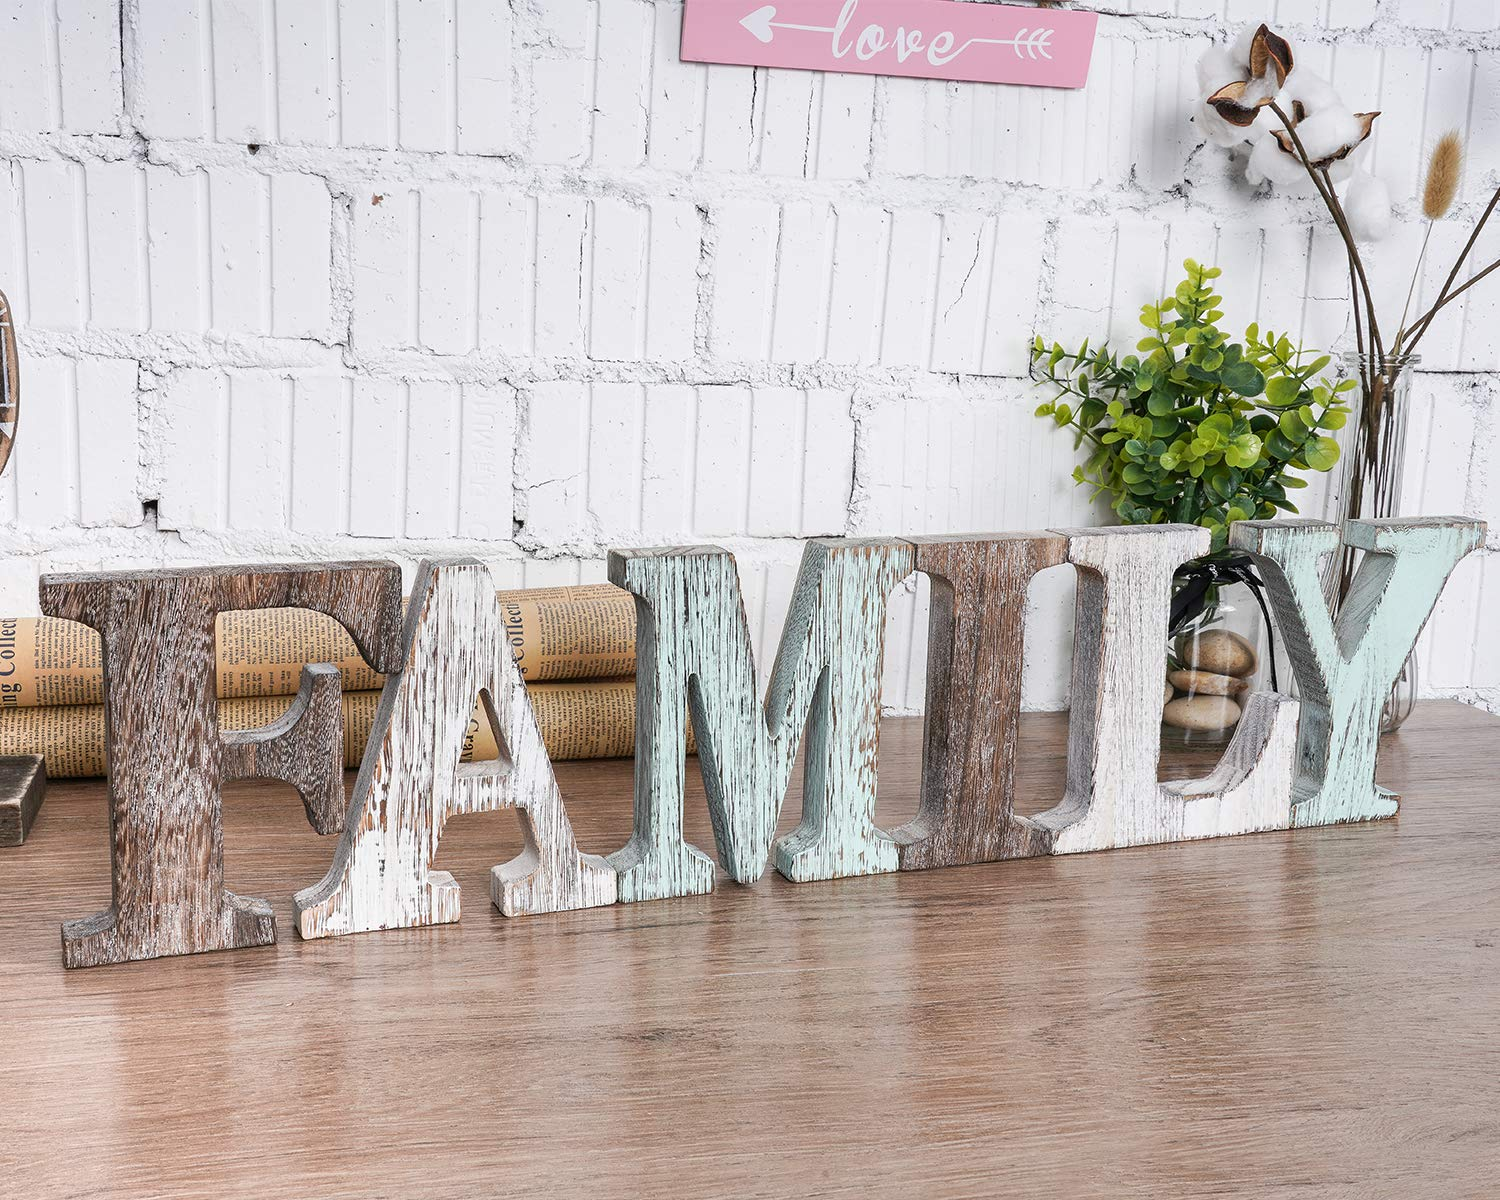 Wood Family Signs Wall Decor Decorative Wooden Blocks Rustic Letters Cutout Farmhouse Home Decor Multicolor Bedroom Kitchen Living Room Table Centerpiece Words Freestanding With Double Sided Tape Decorative Accessories Amazon Com Au